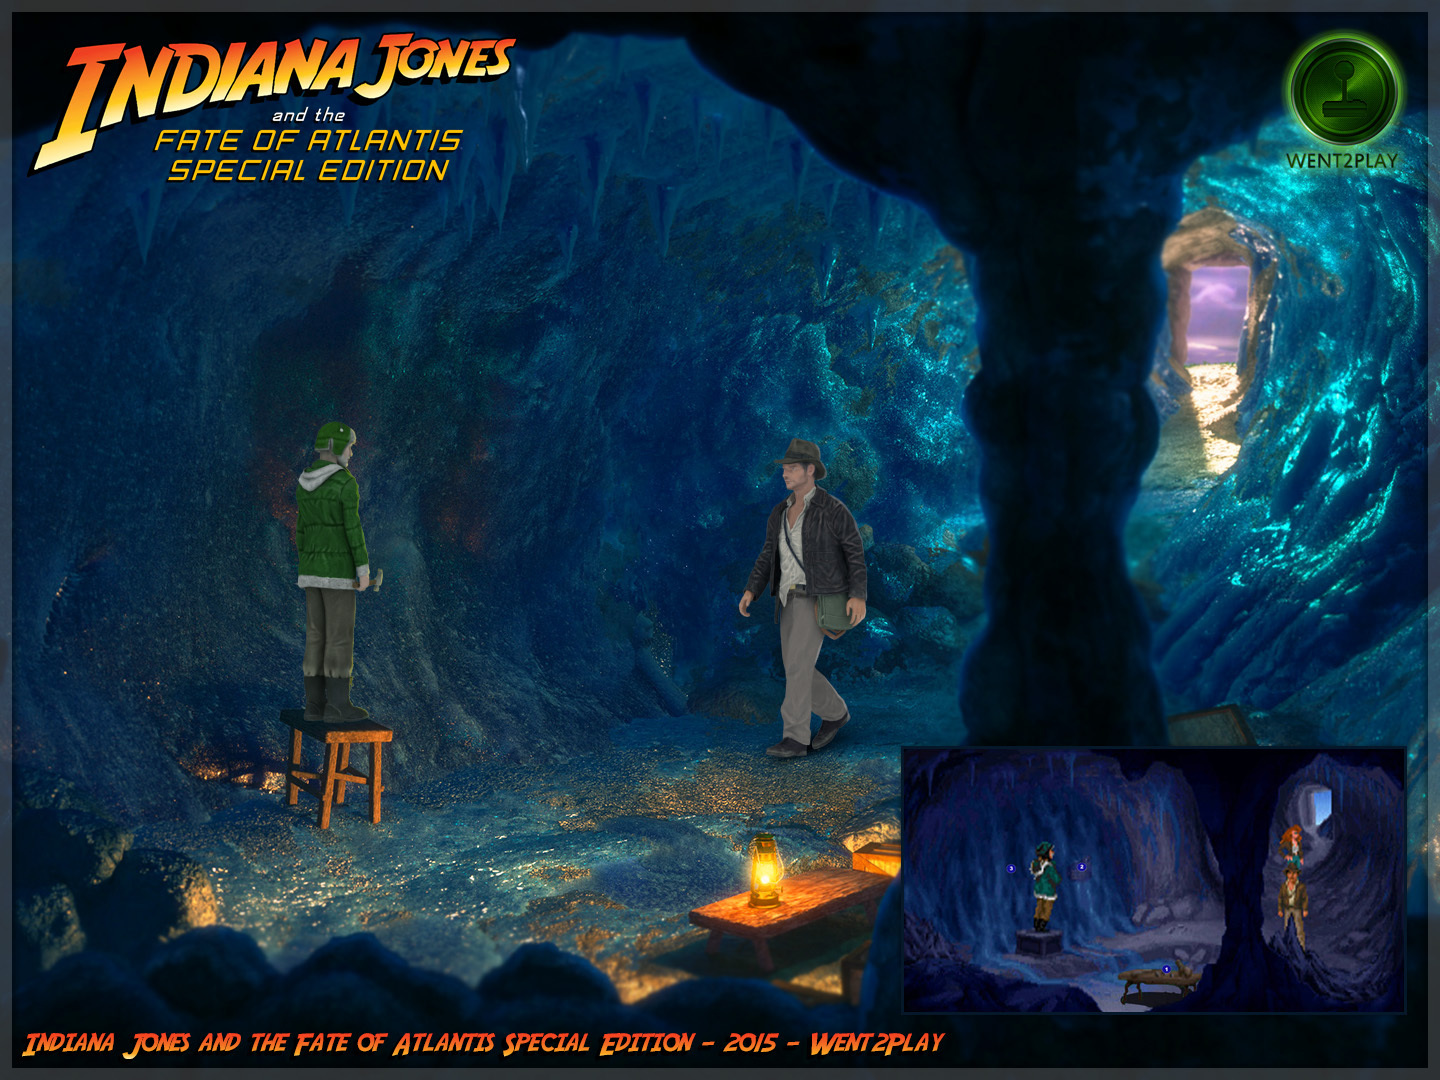 Fan-made Indiana Jones game told to stop development